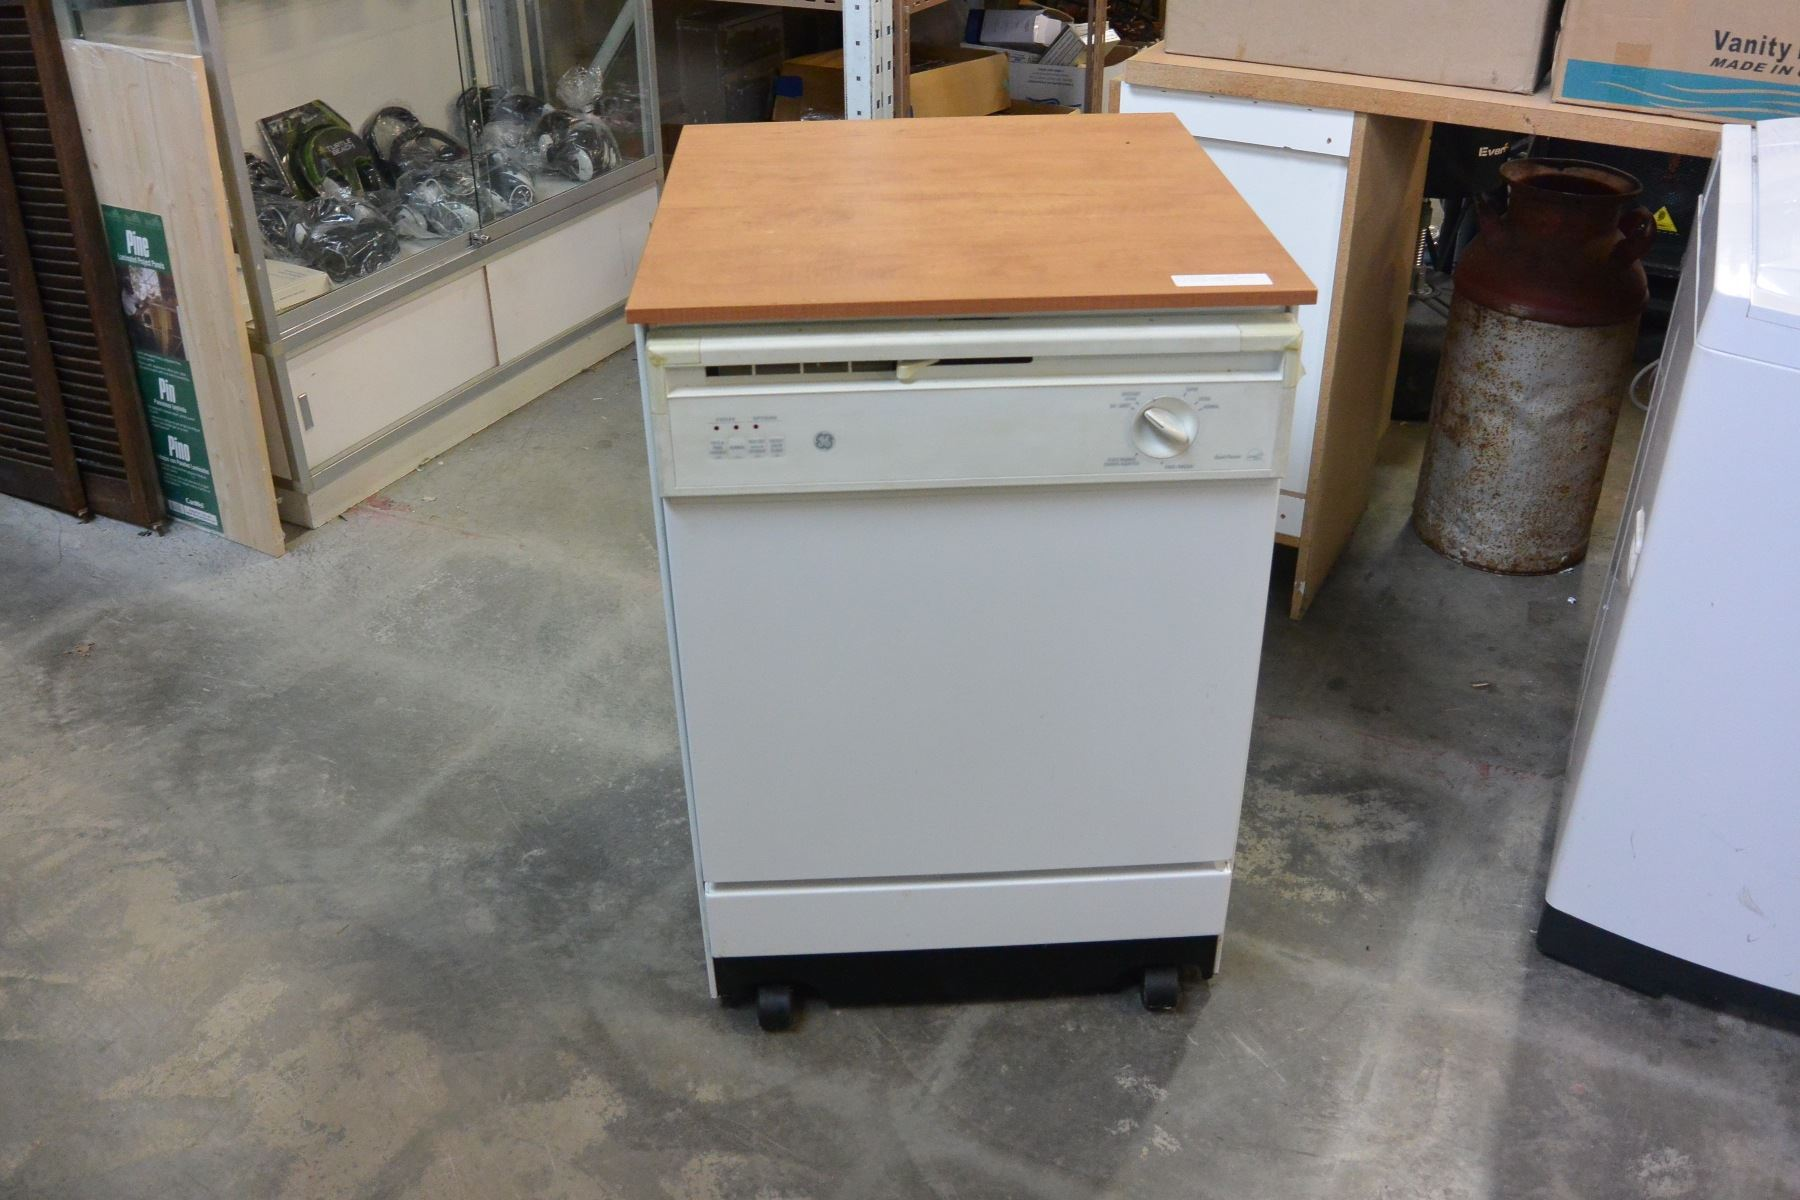 Image 1 Ge Portable Dishwasher Working With Butcher Block Top